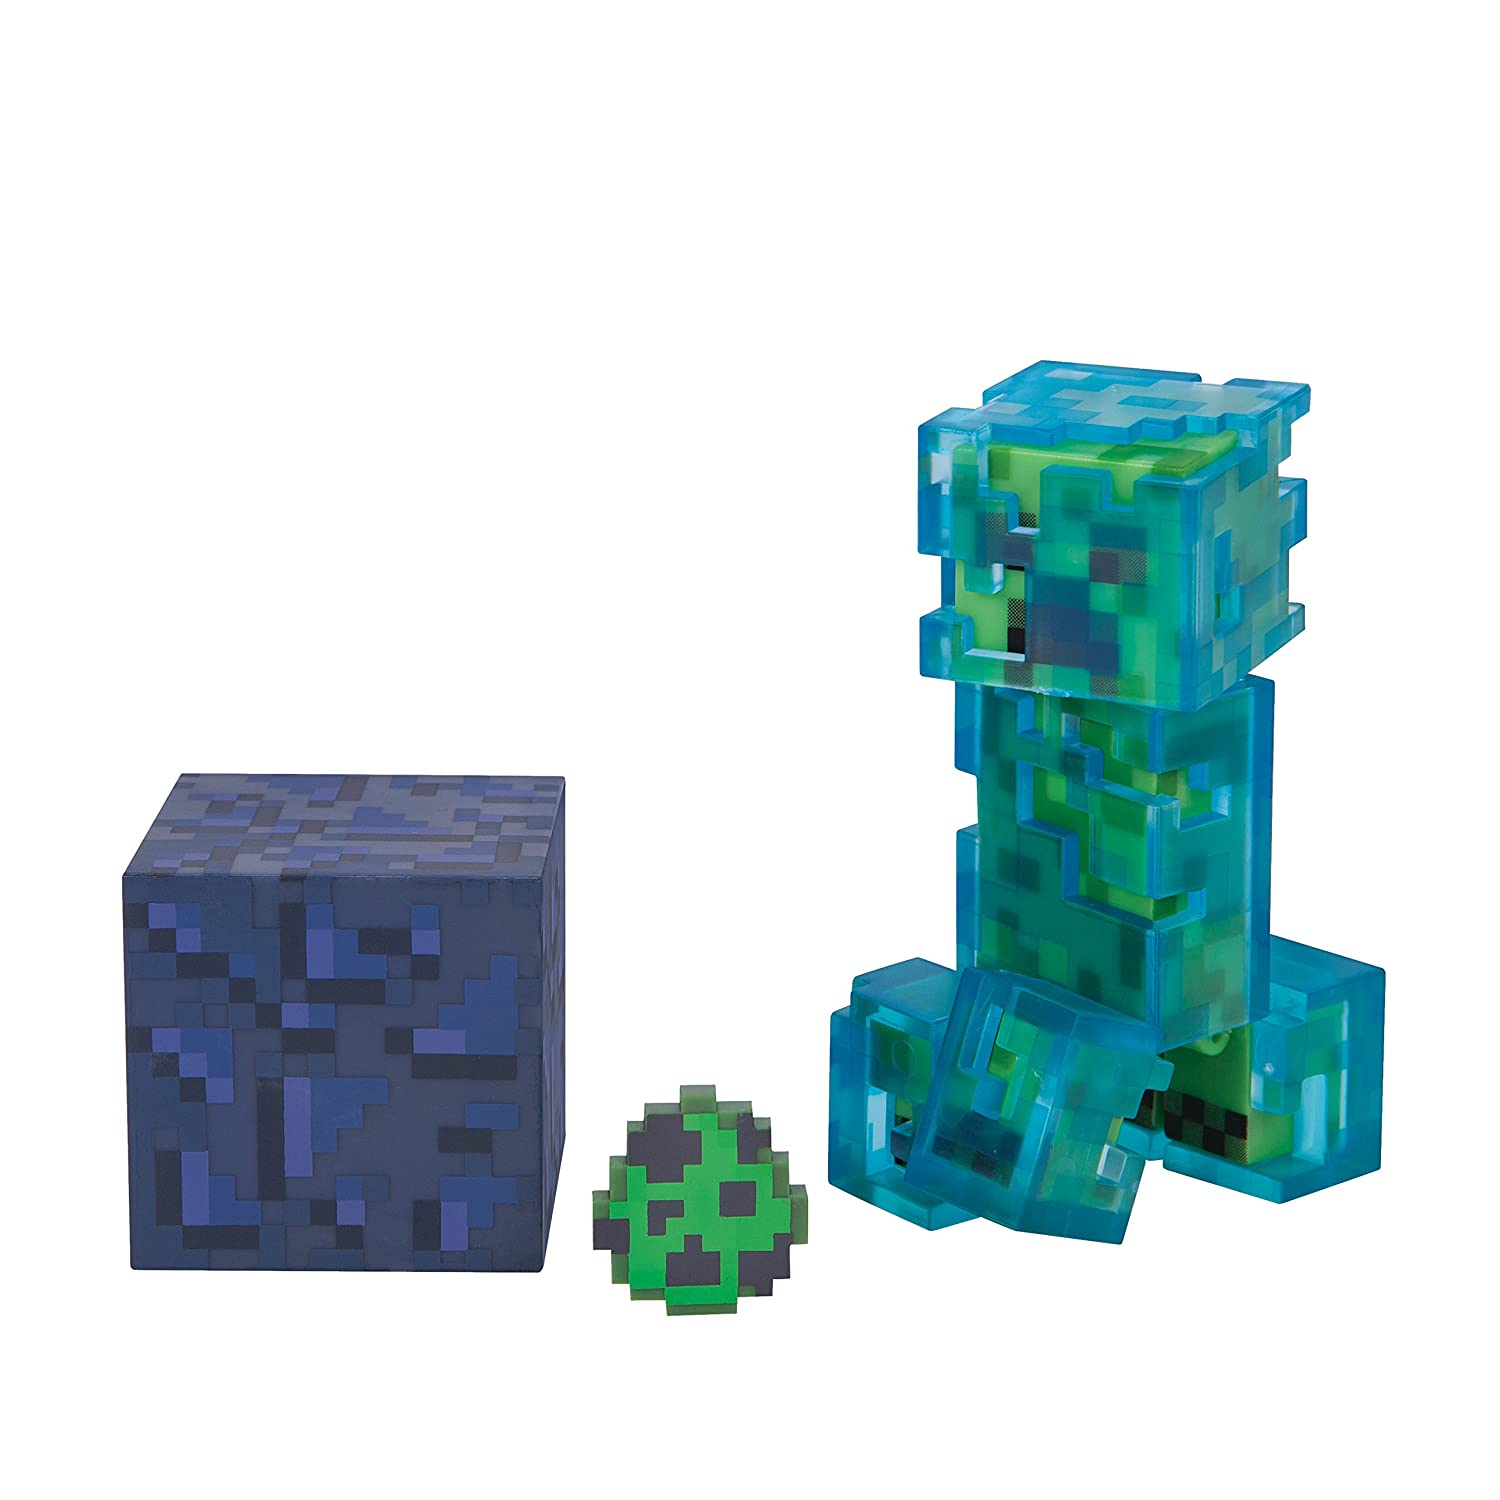 The Core Minecraft Toy Creeper Figures Are Perfect Gifts